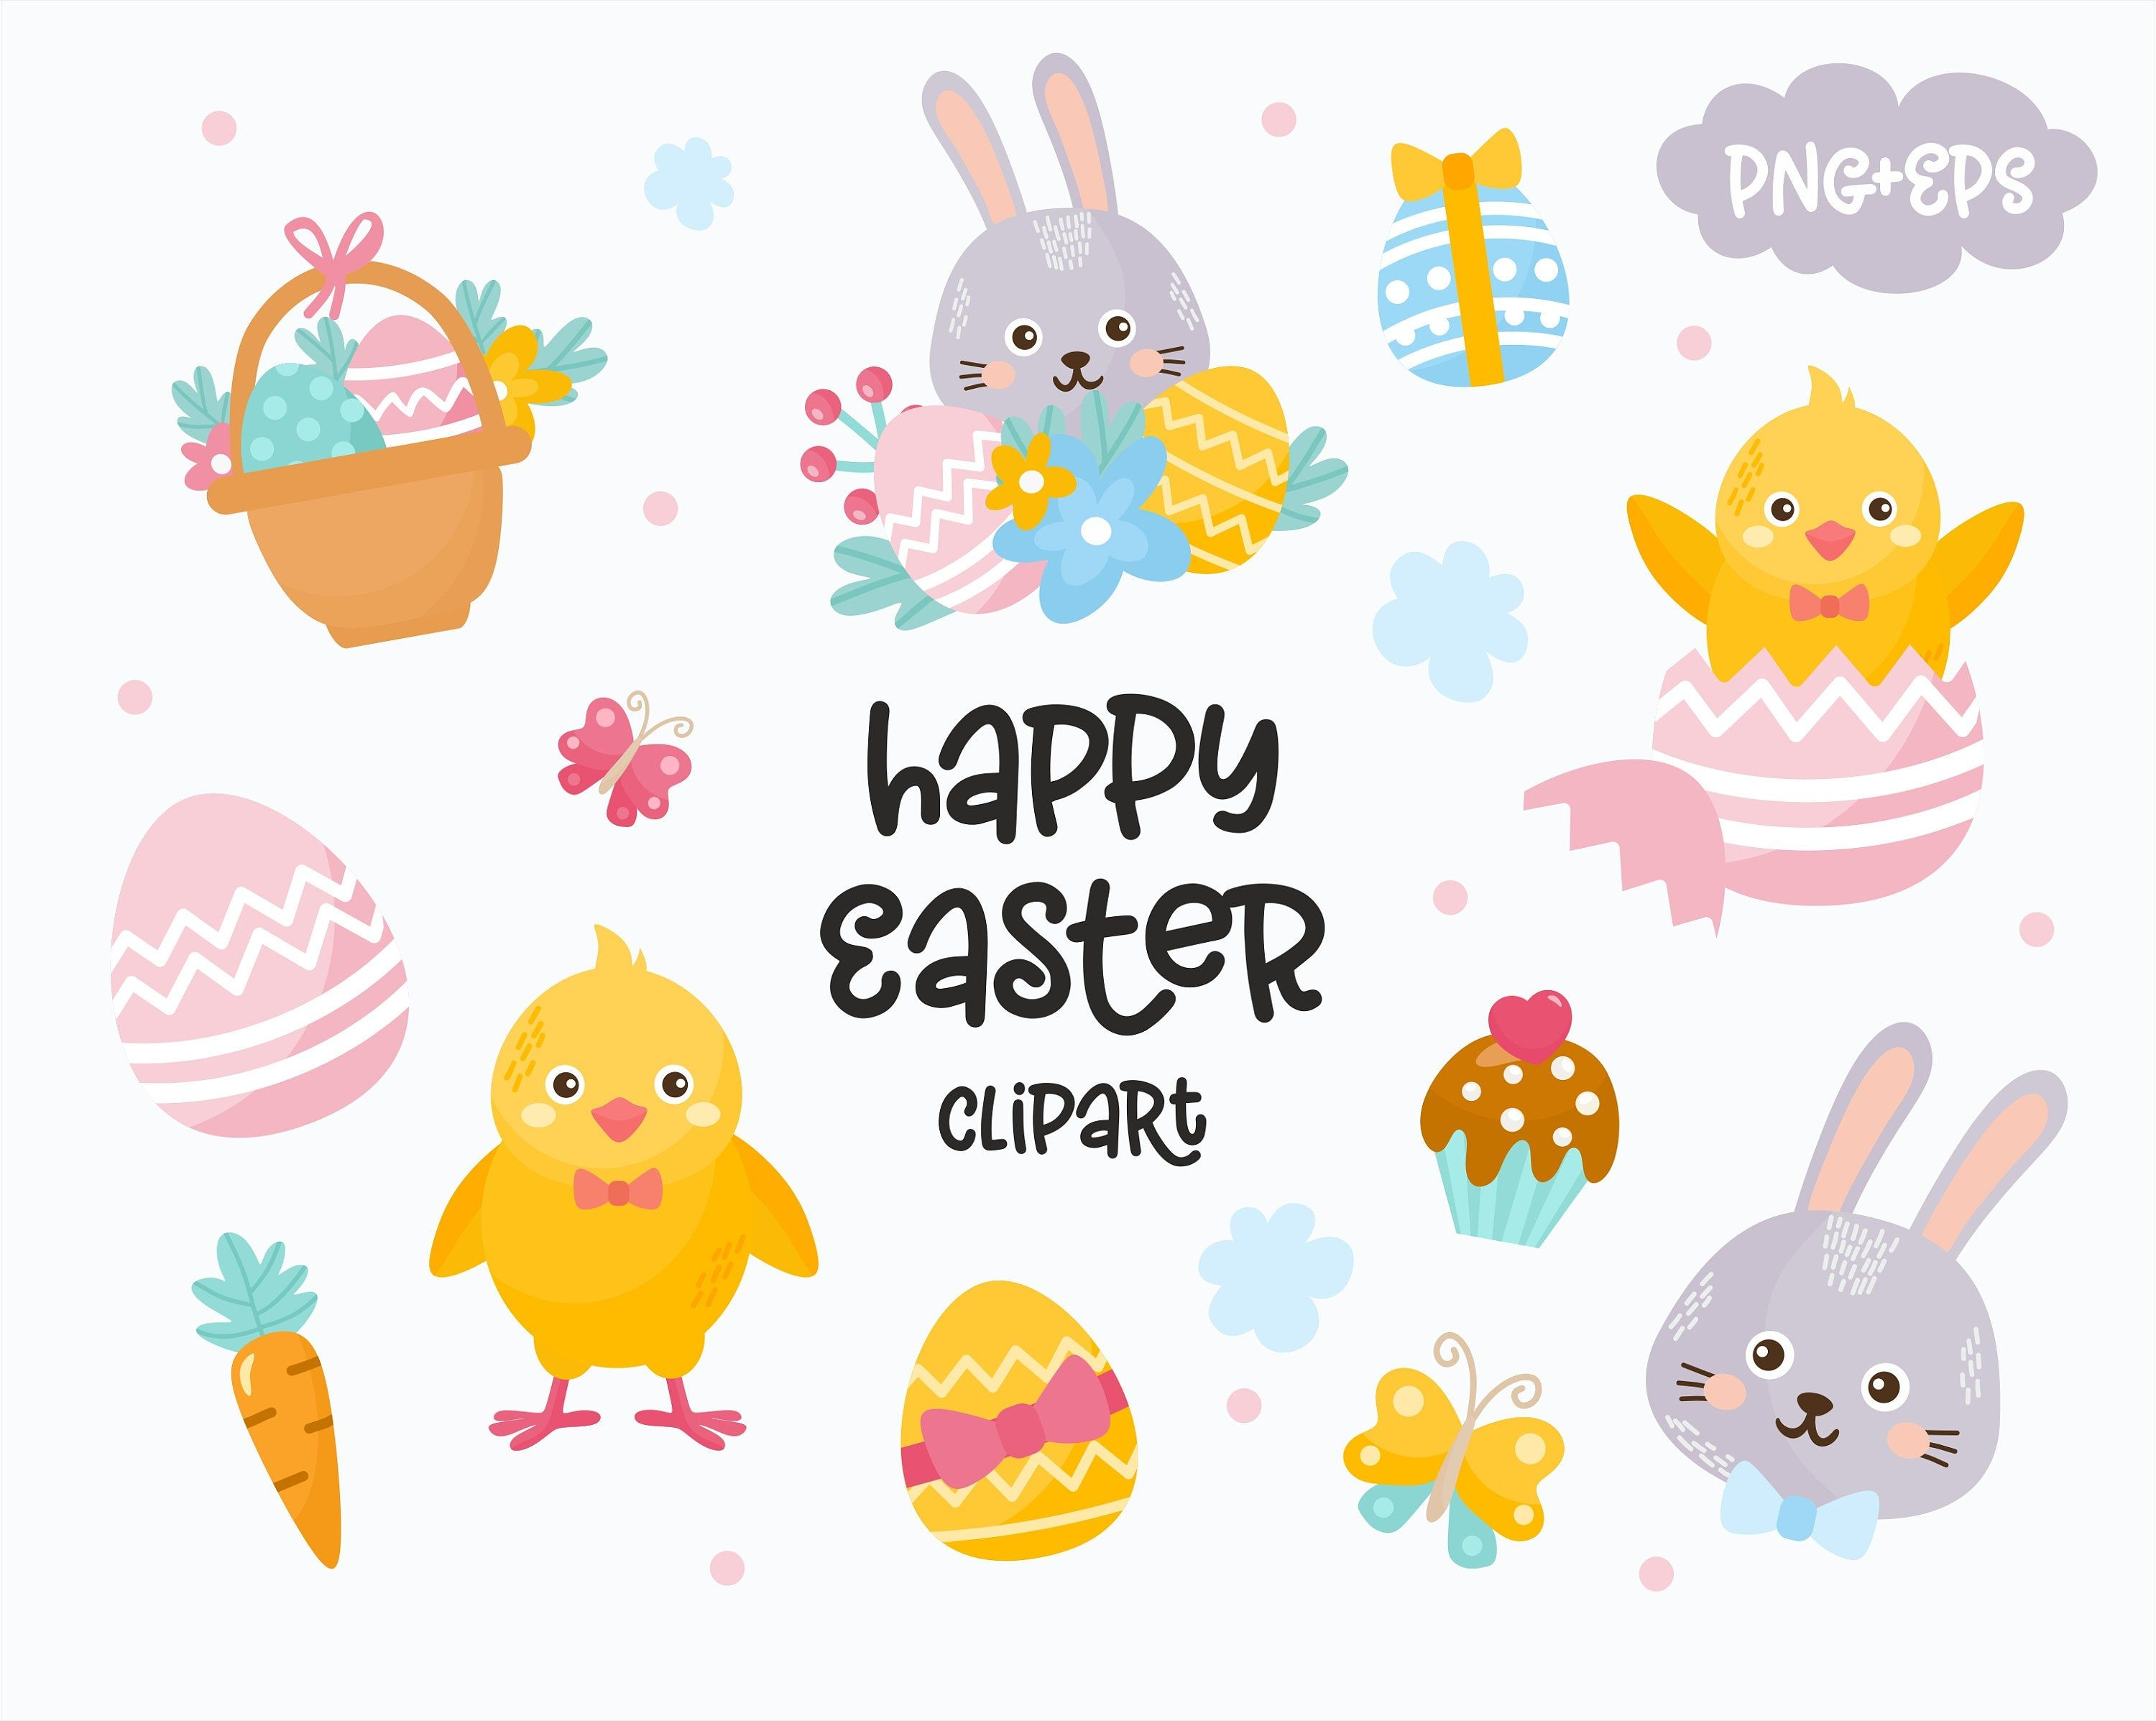 13+ Happy easter clipart images ideas